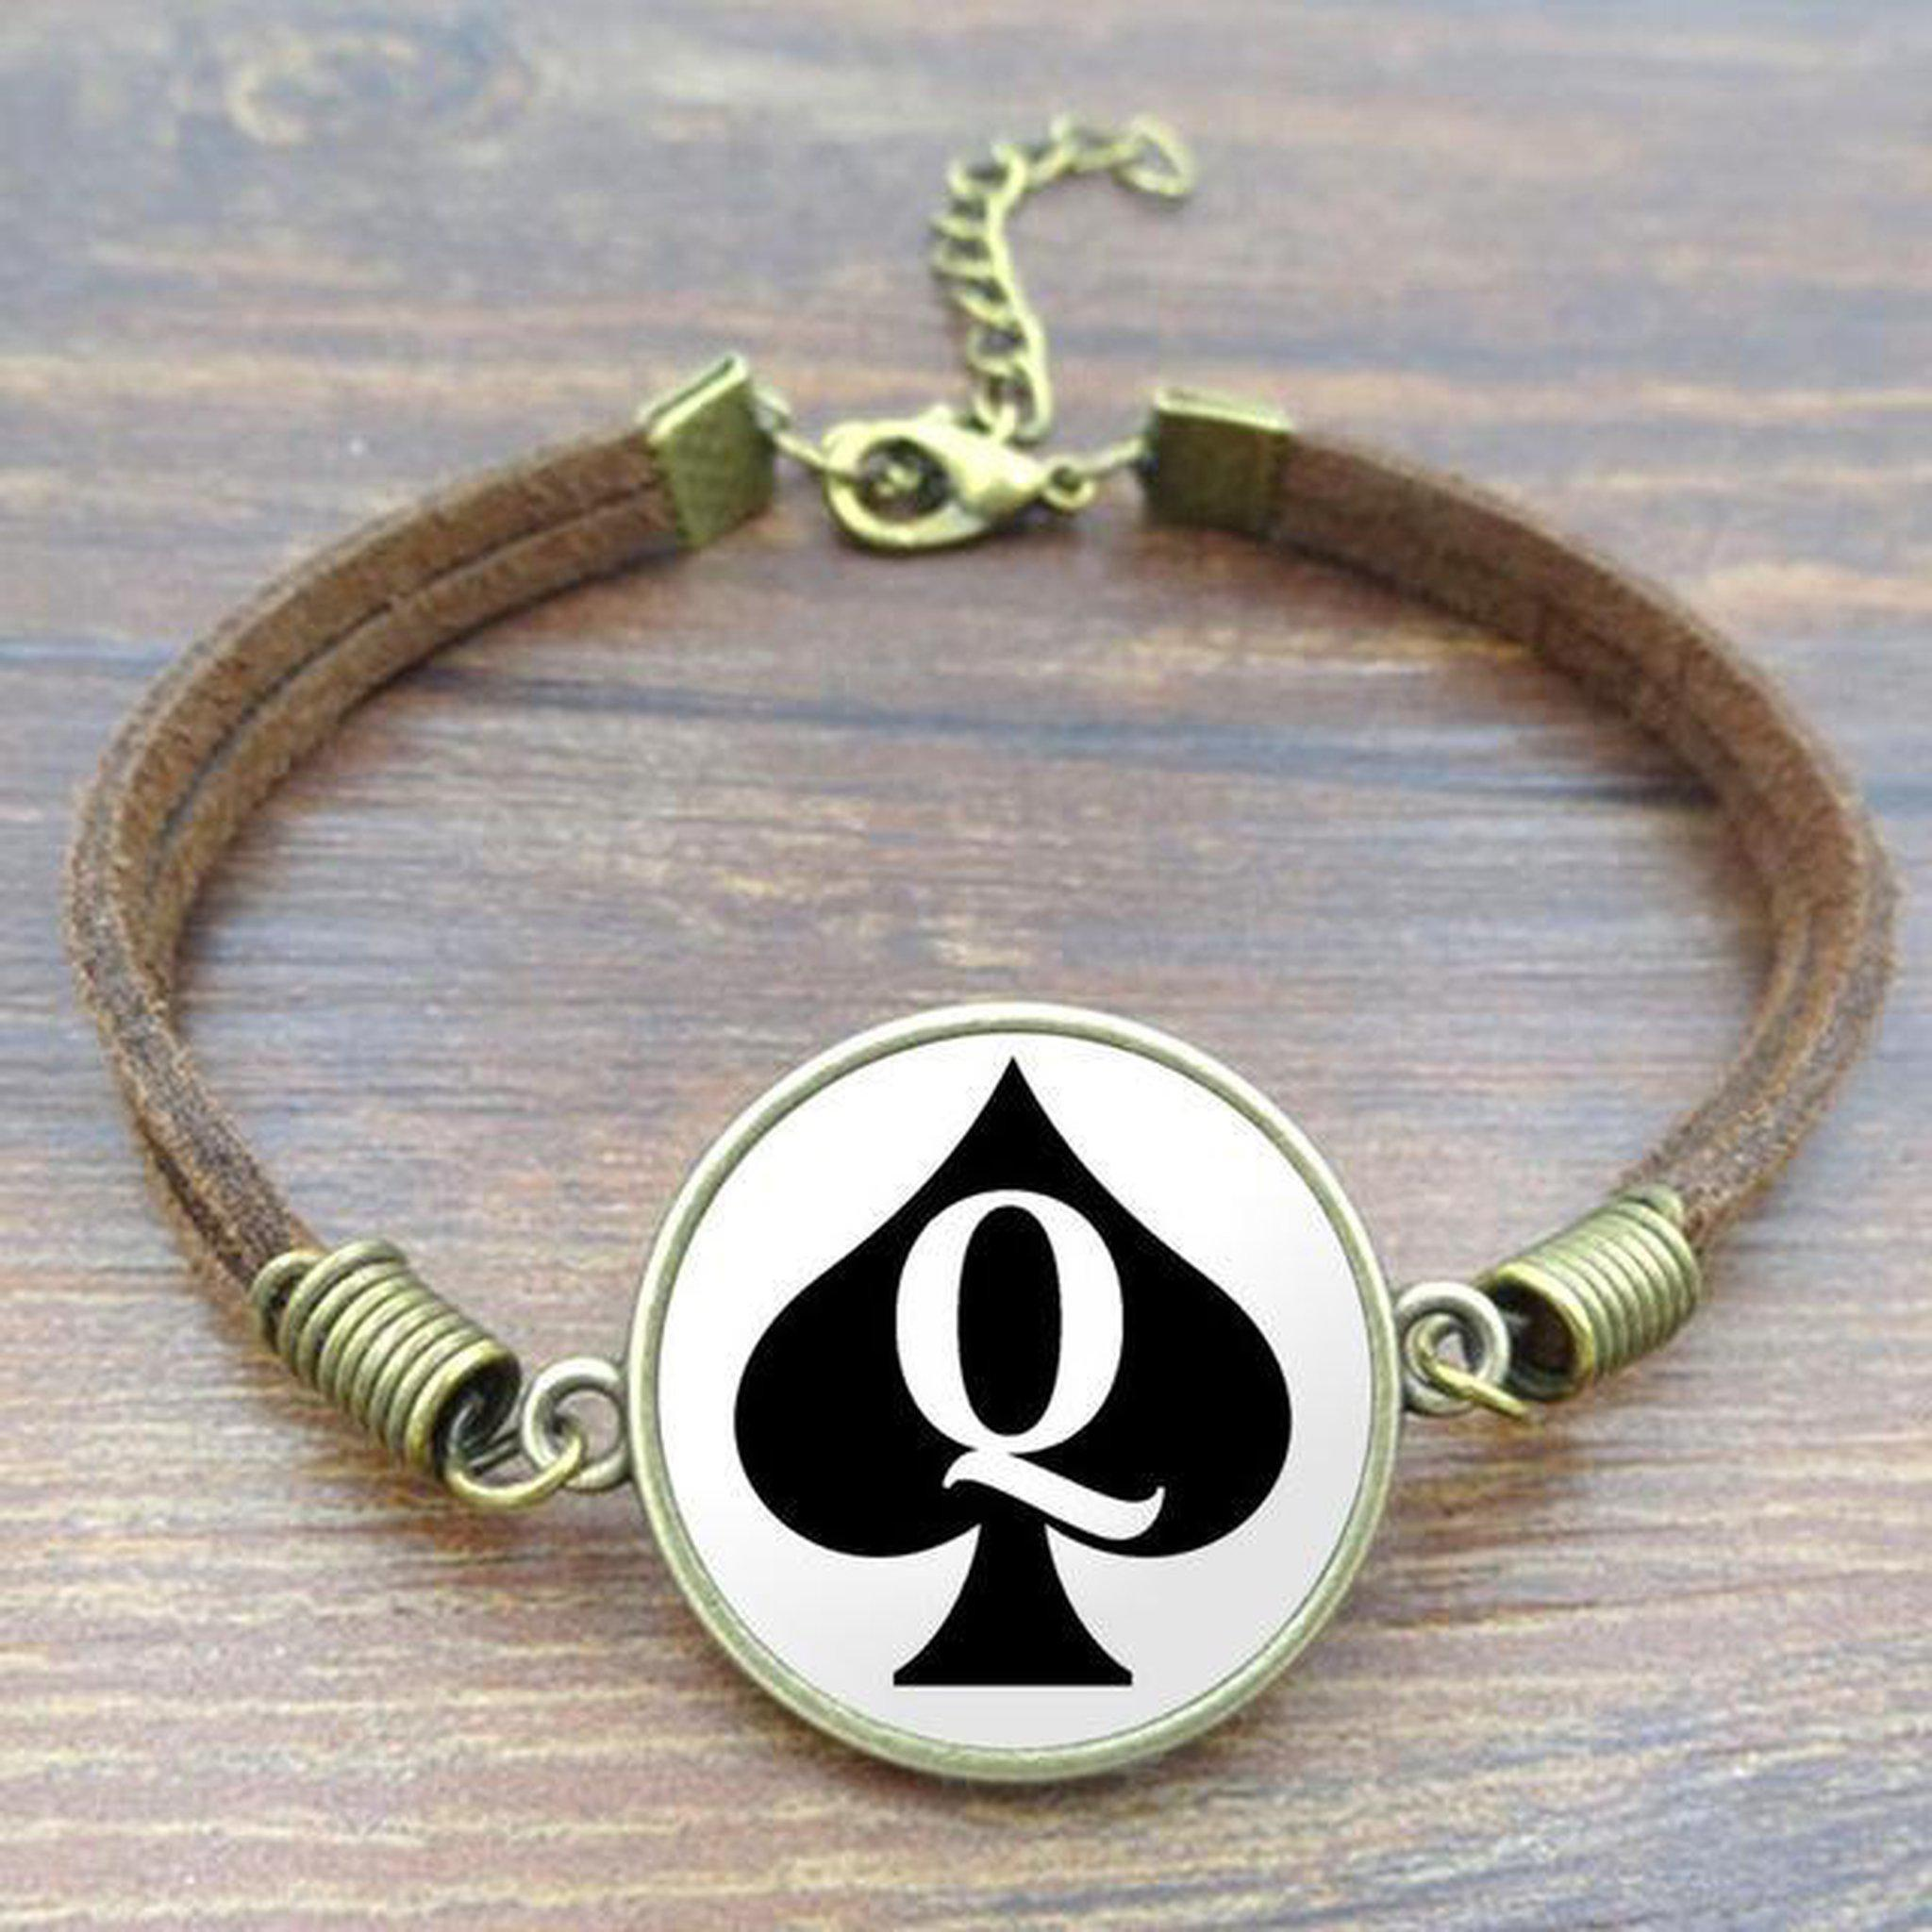 Vintage Queens of Spades Bracelet-Good Girl xox-S3572-buy-bdsm-bondage-gear-tools-toys-online-good-girl-xox